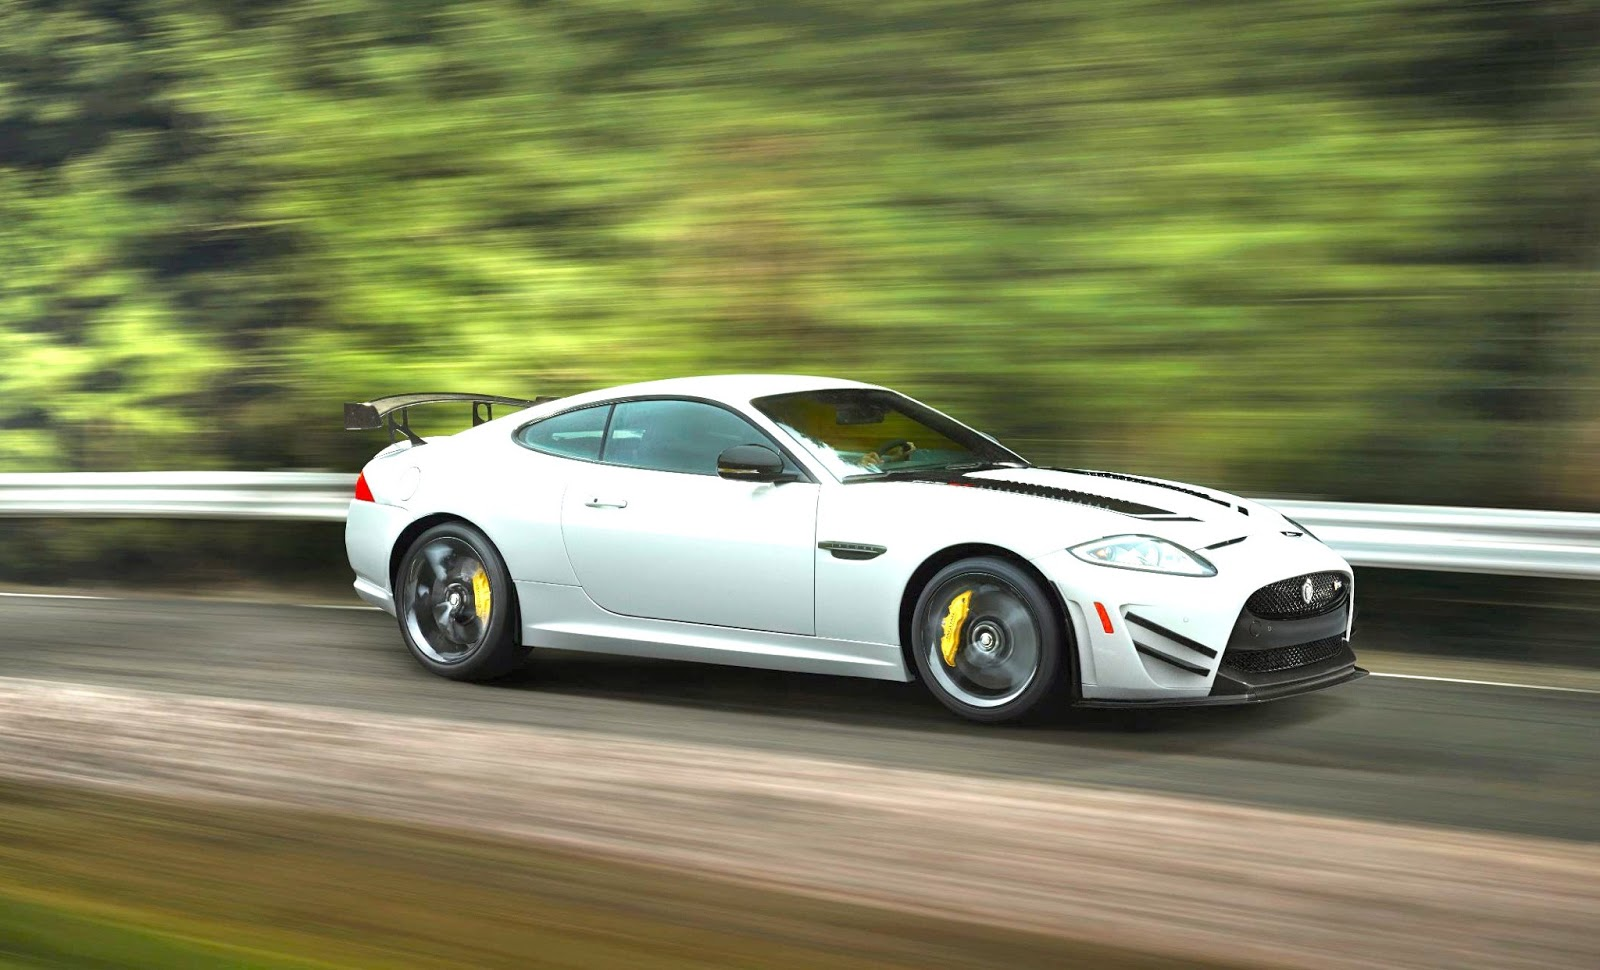 2014 JAGUAR XKR S GT: TRACK DAY DELIGHT!